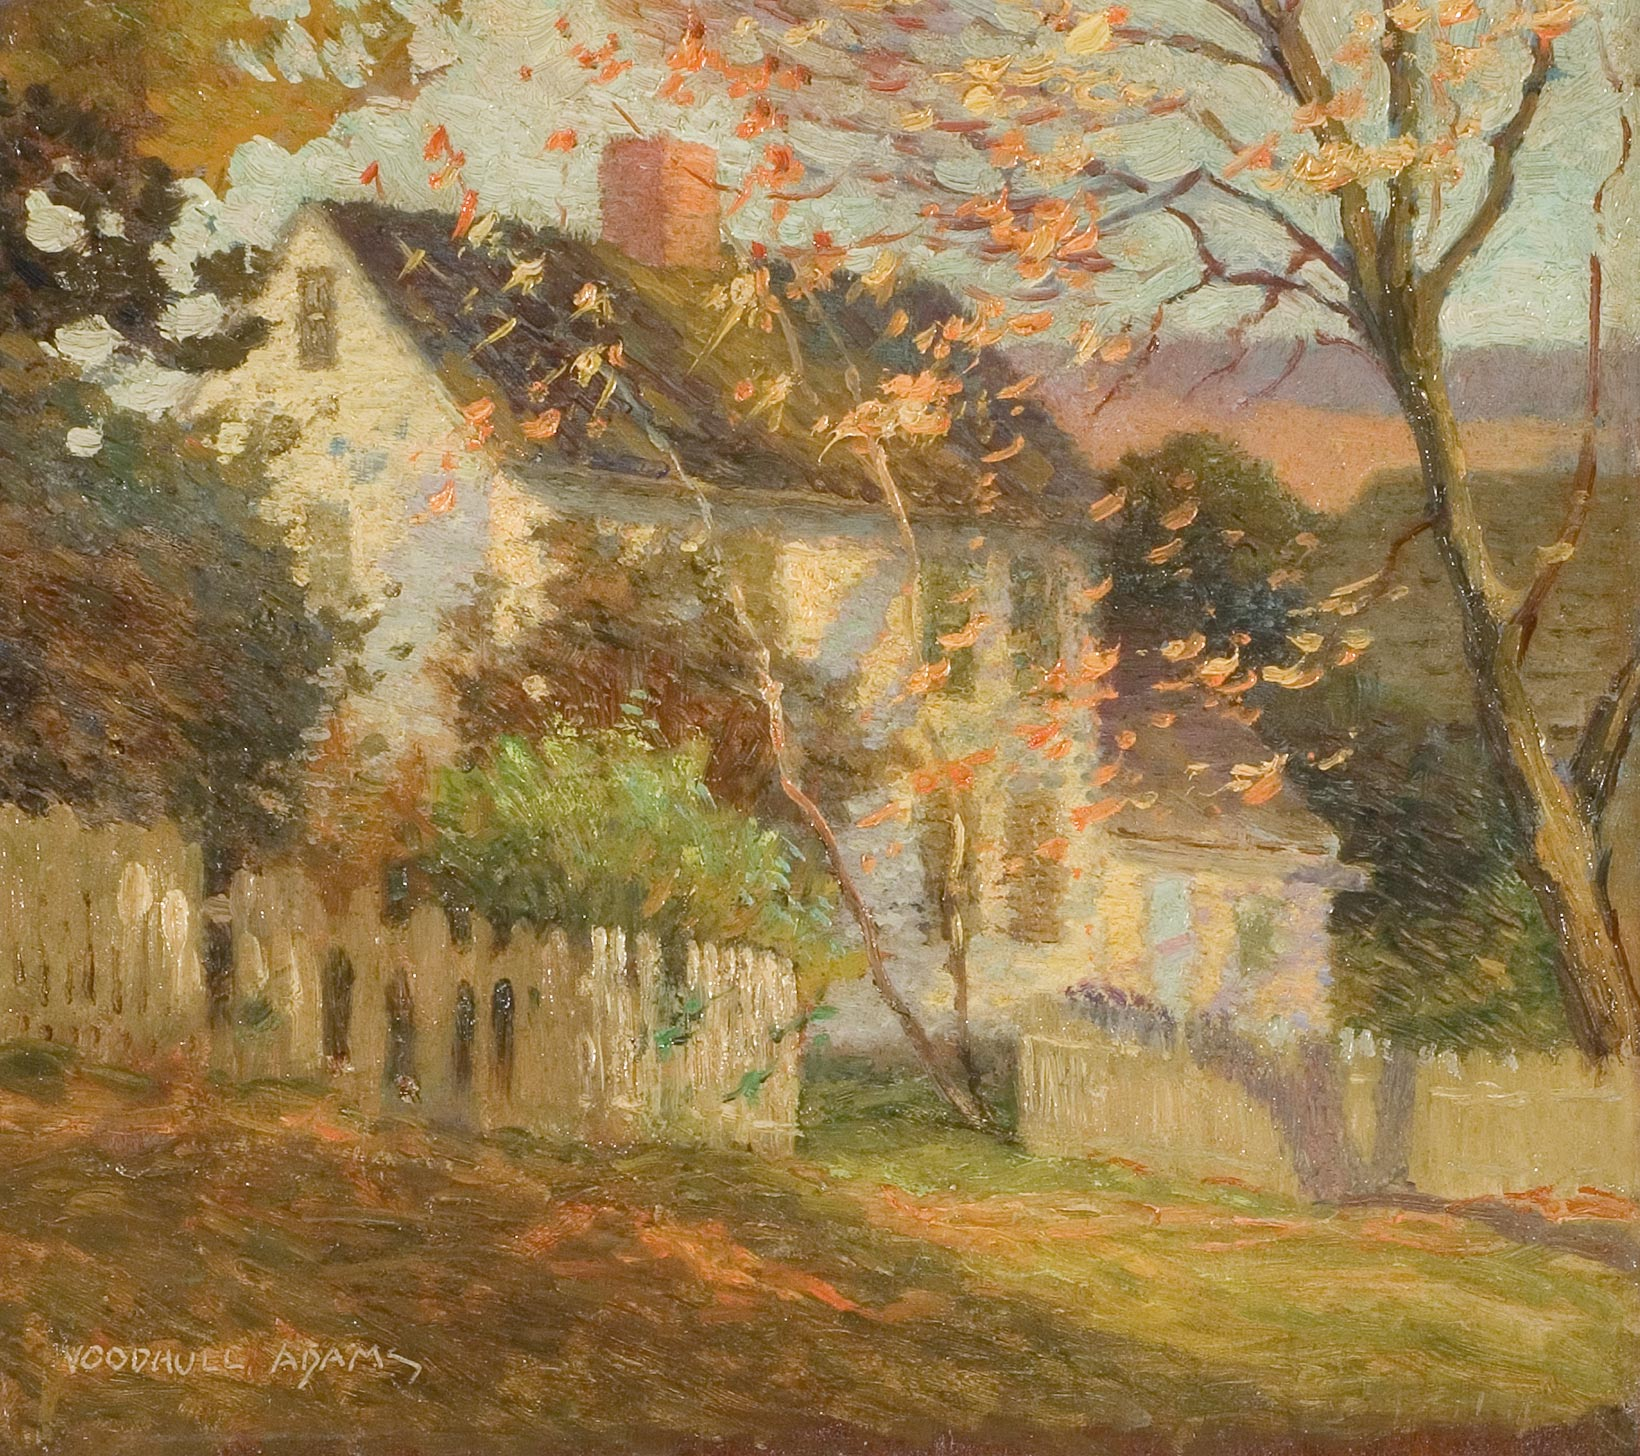 White cottage in autumn panel painting by woodhull adams florence